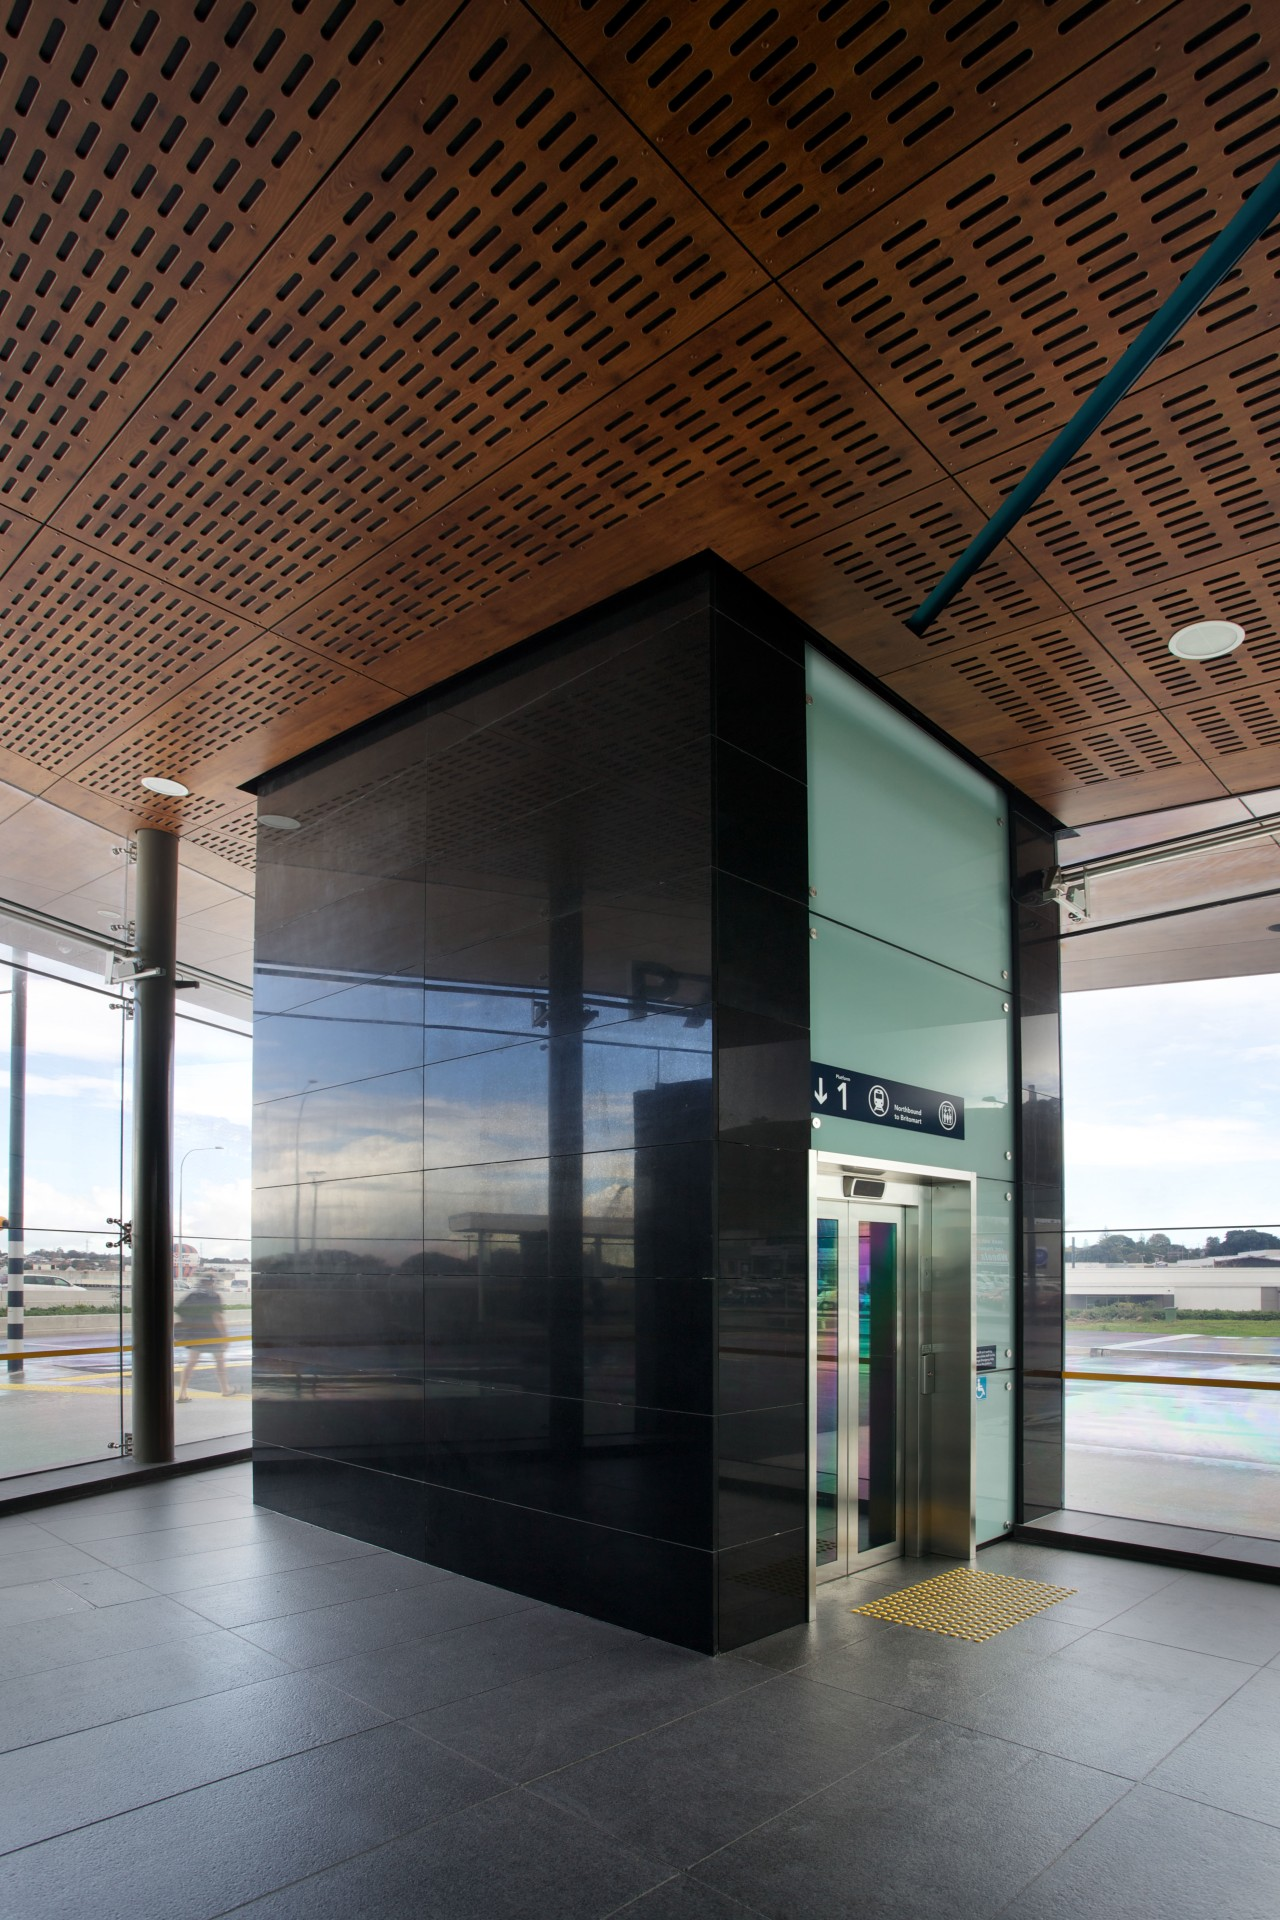 Honed basalt supplied by SCE Stone & Design architecture, building, ceiling, daylighting, glass, interior design, brown, black